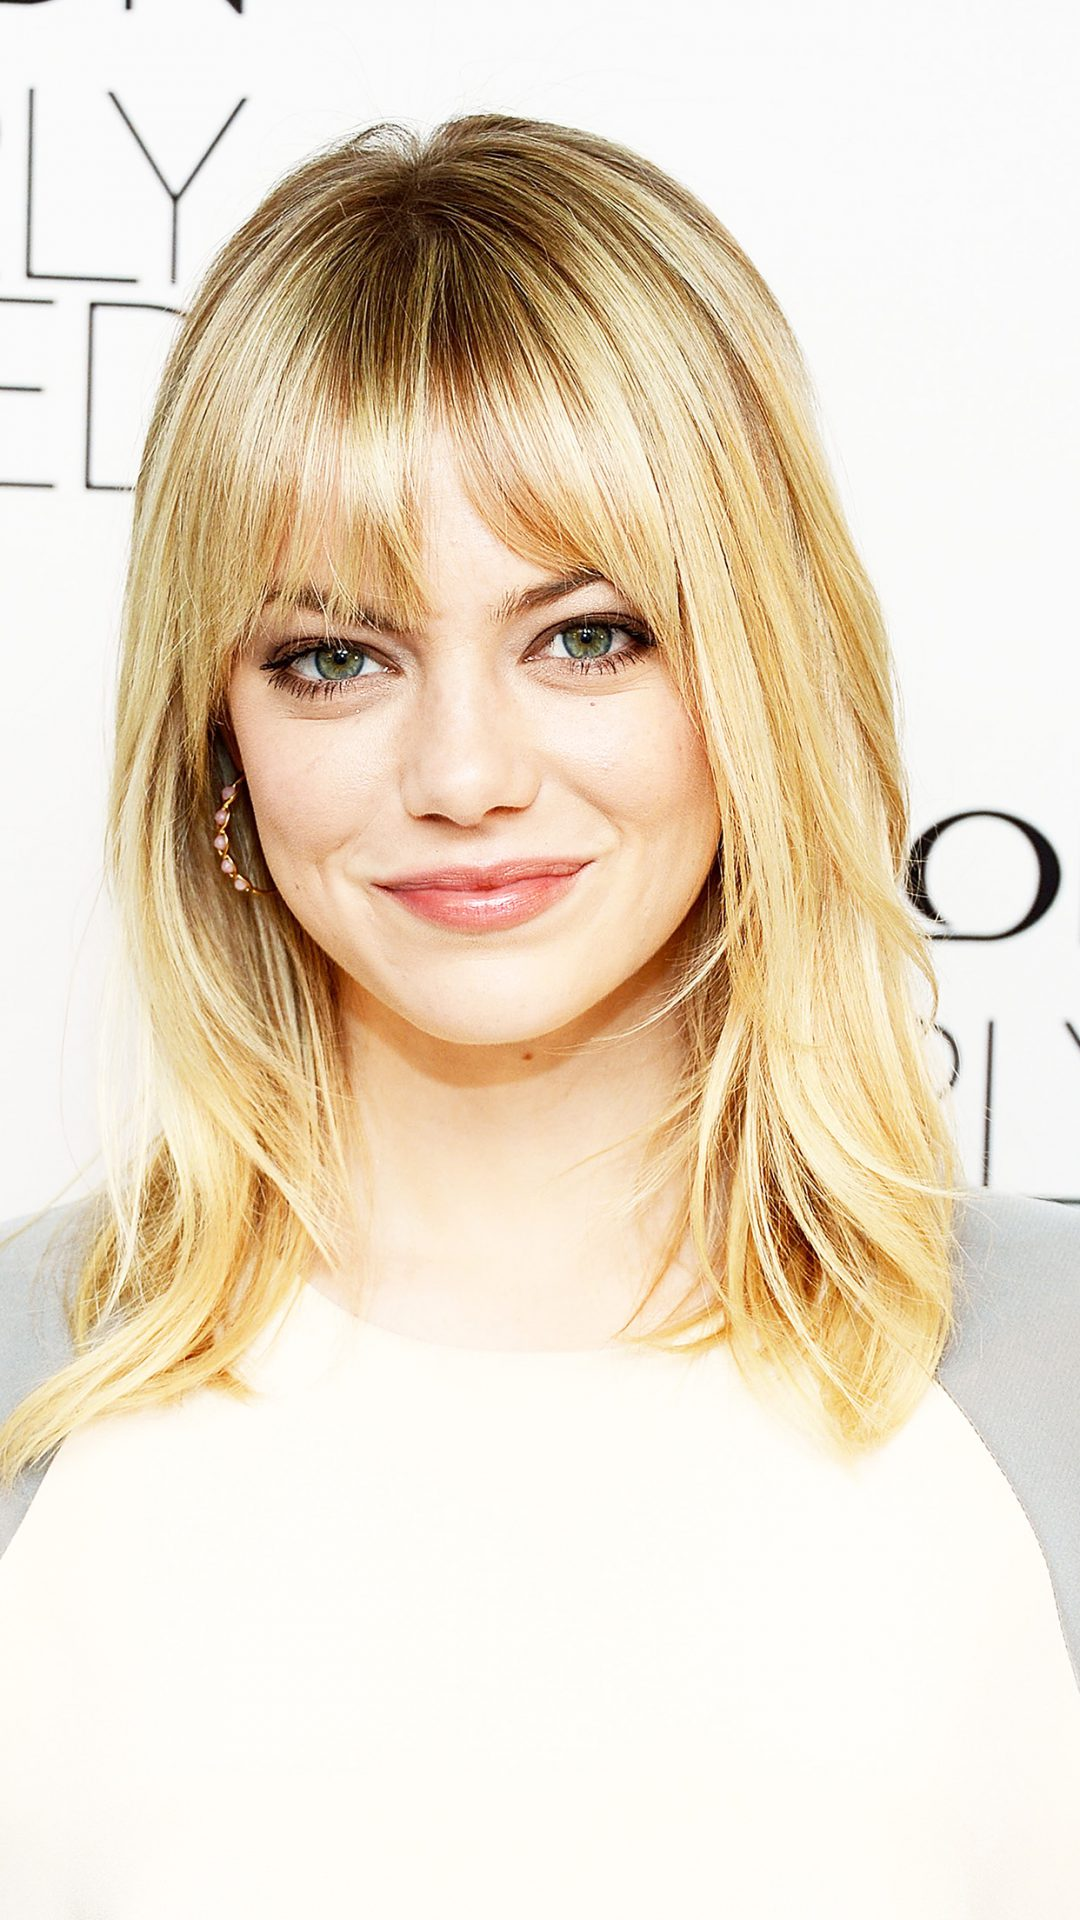 NEW YORK, NY - DECEMBER 05:  Actress Emma Stone attends the Emma Stone Revlon's NEW Nearly Naked Makeup Launch at The London Hotel on December 5, 2012 in New York City.  (Photo by Andrew H. Walker/Getty Images)